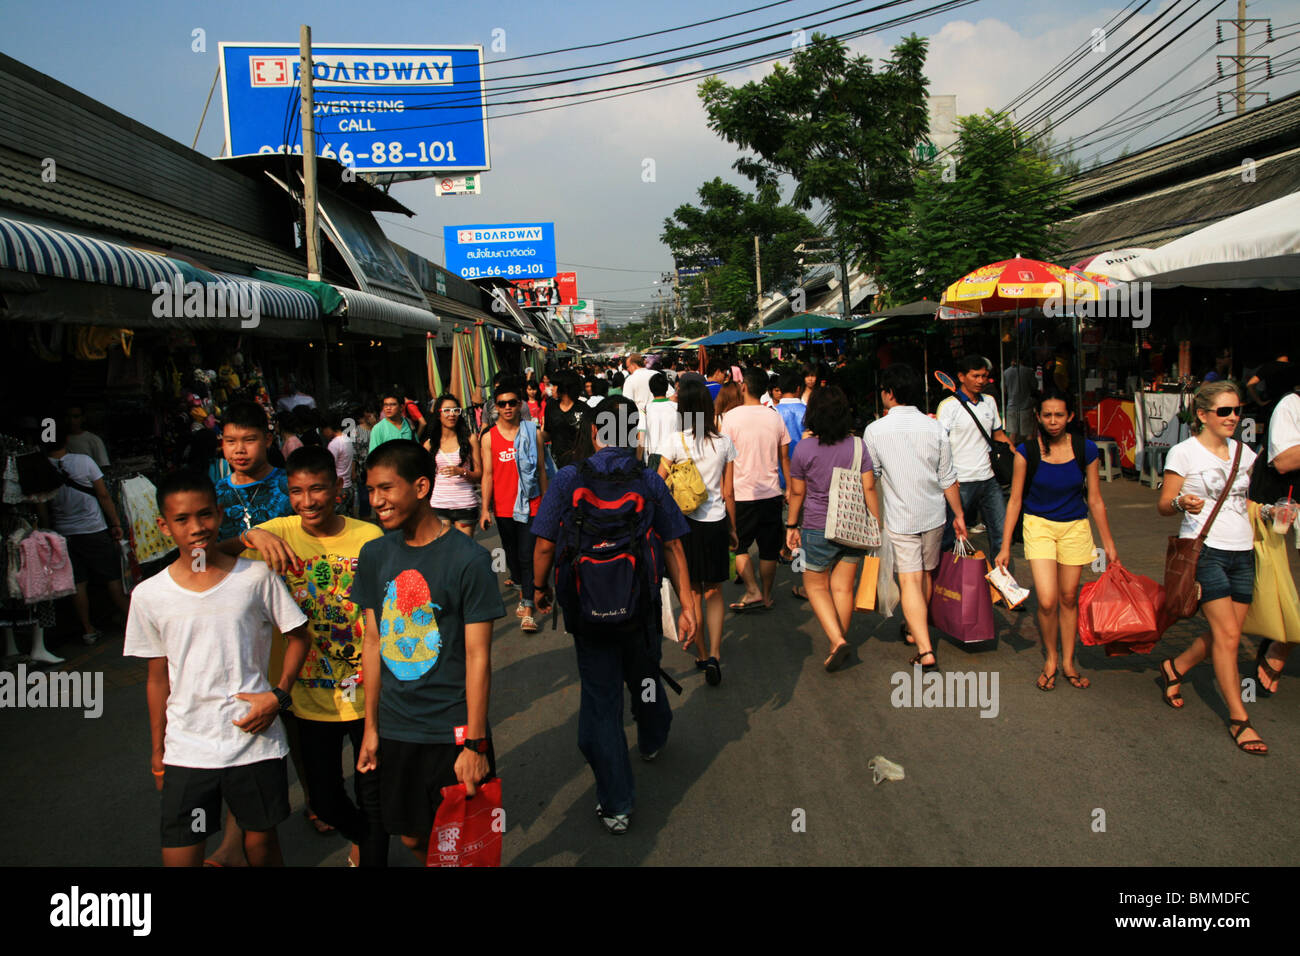 Shoppers in Chatuchak weekend market, Bangkok, Thailand - Stock Image